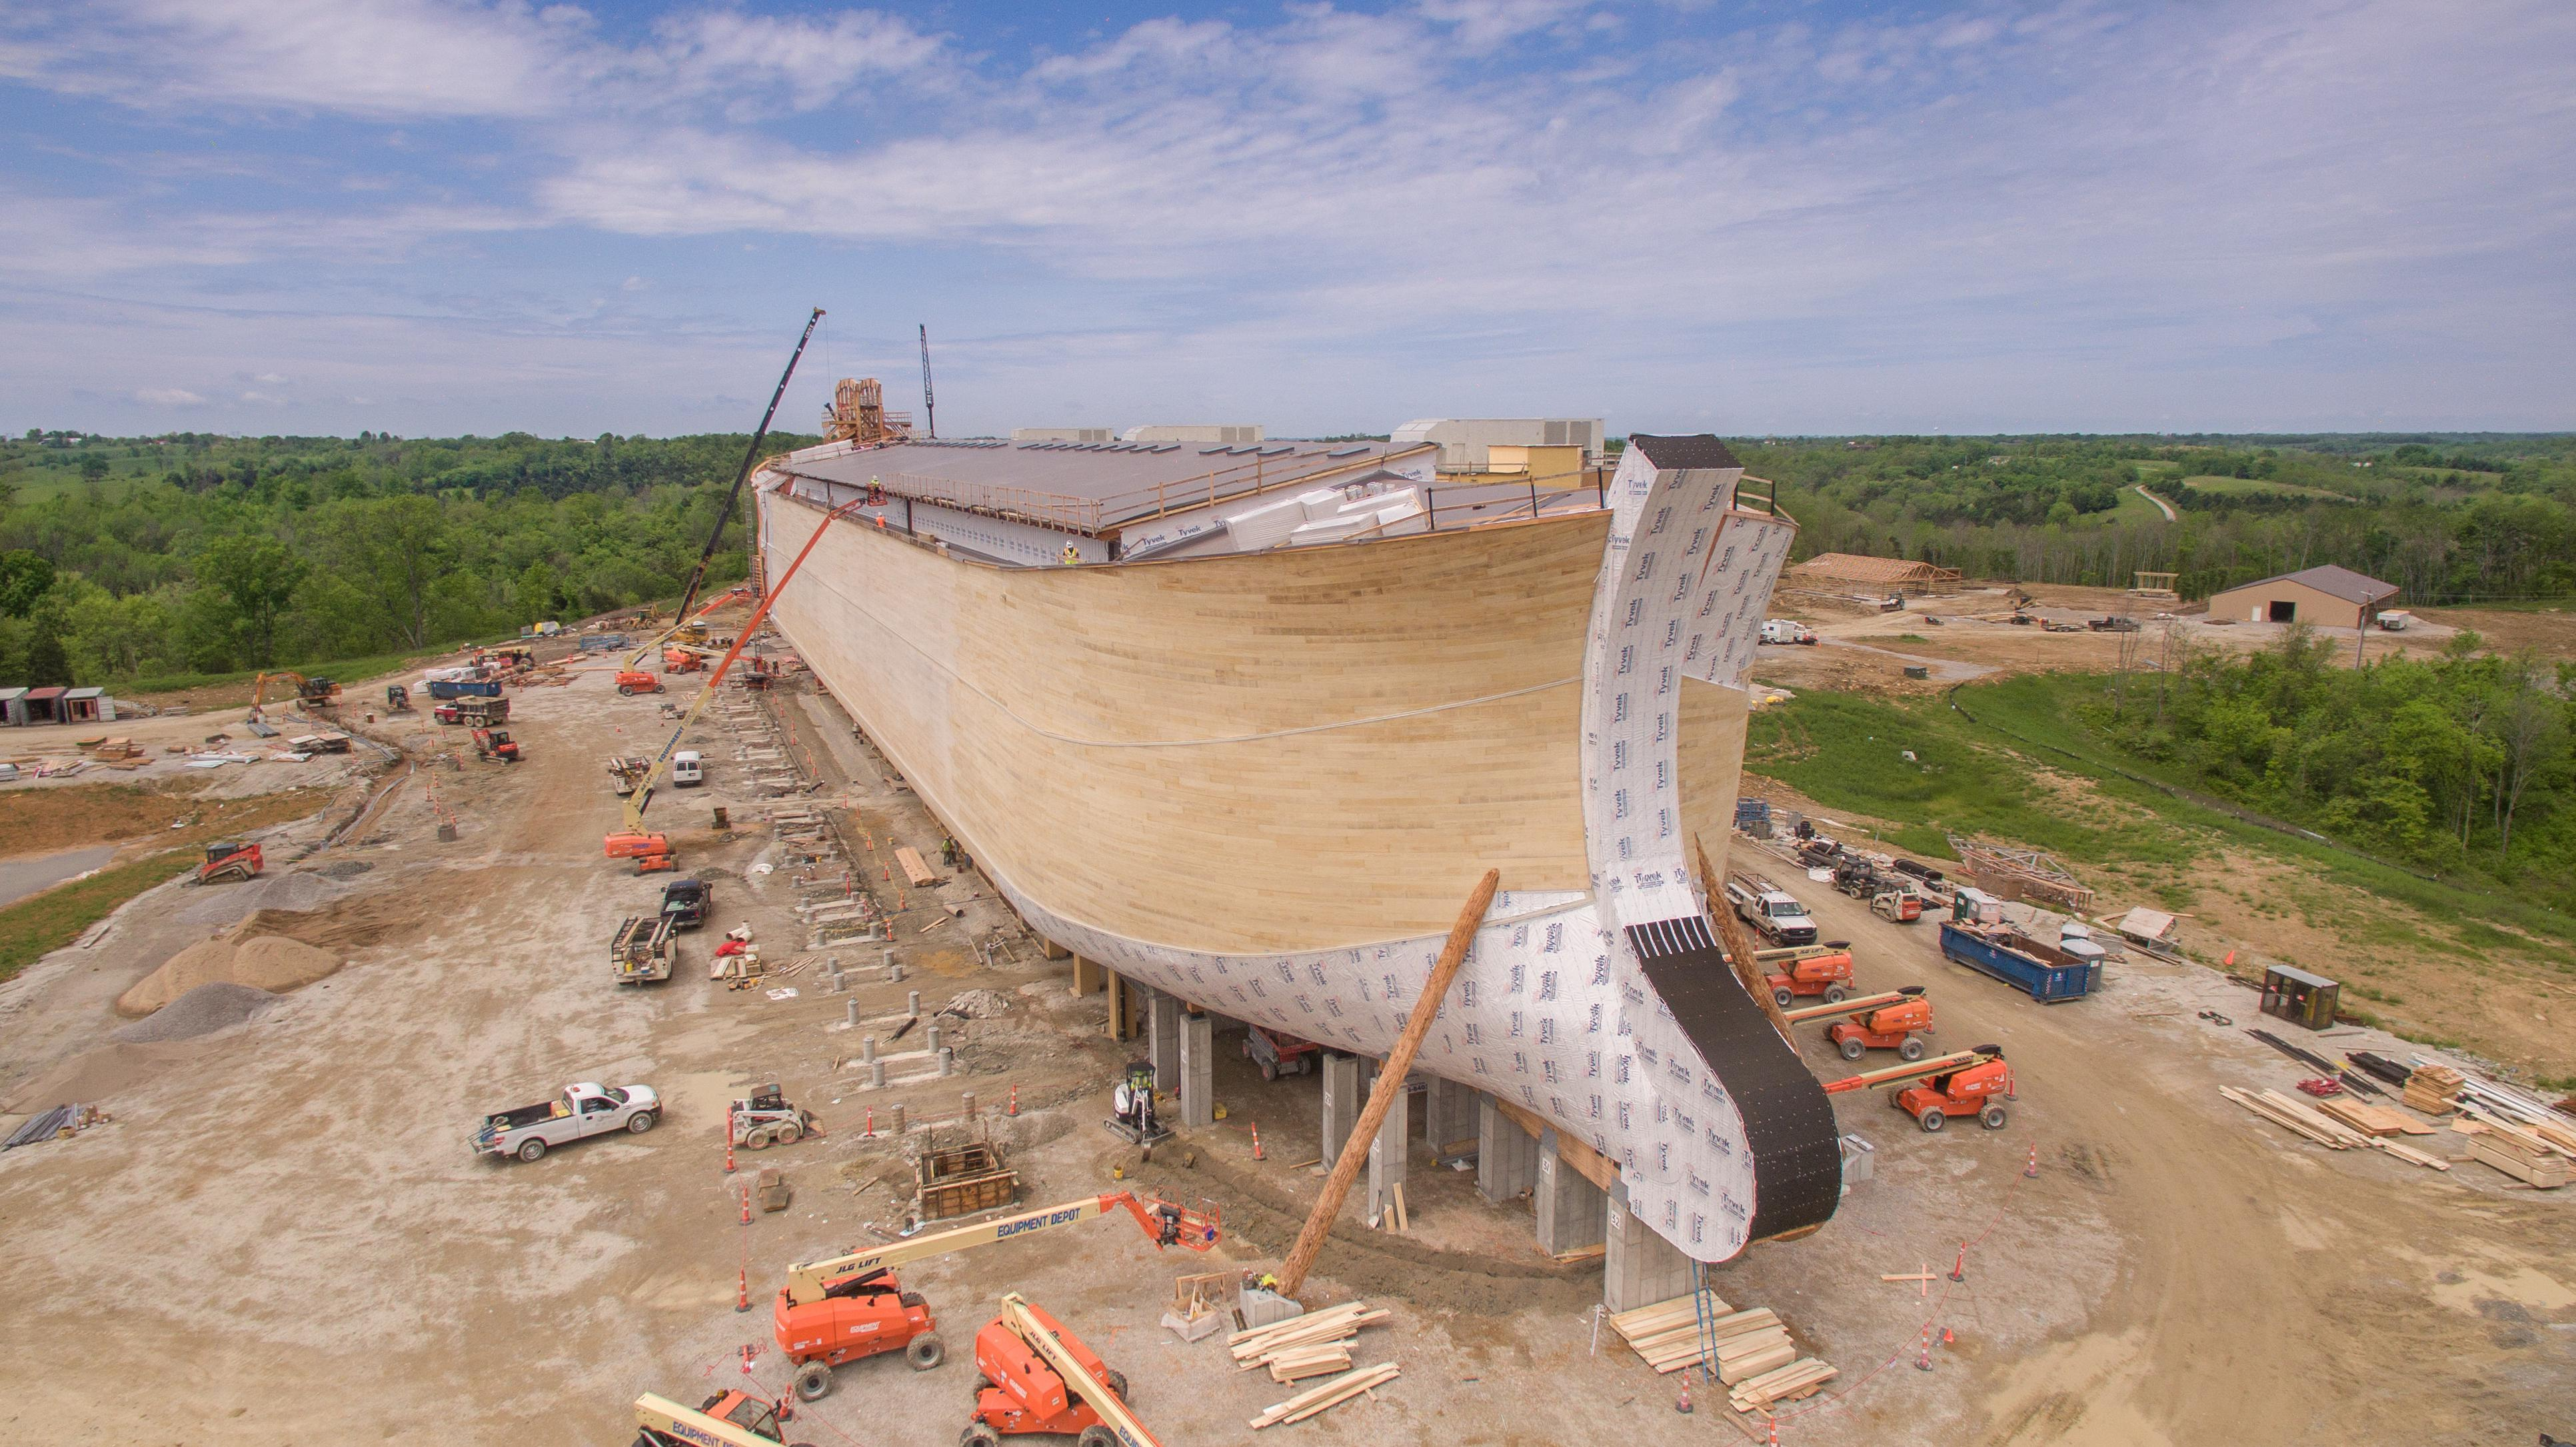 Controversial Noah's Ark Amusement Park Opens This Week in Kentucky